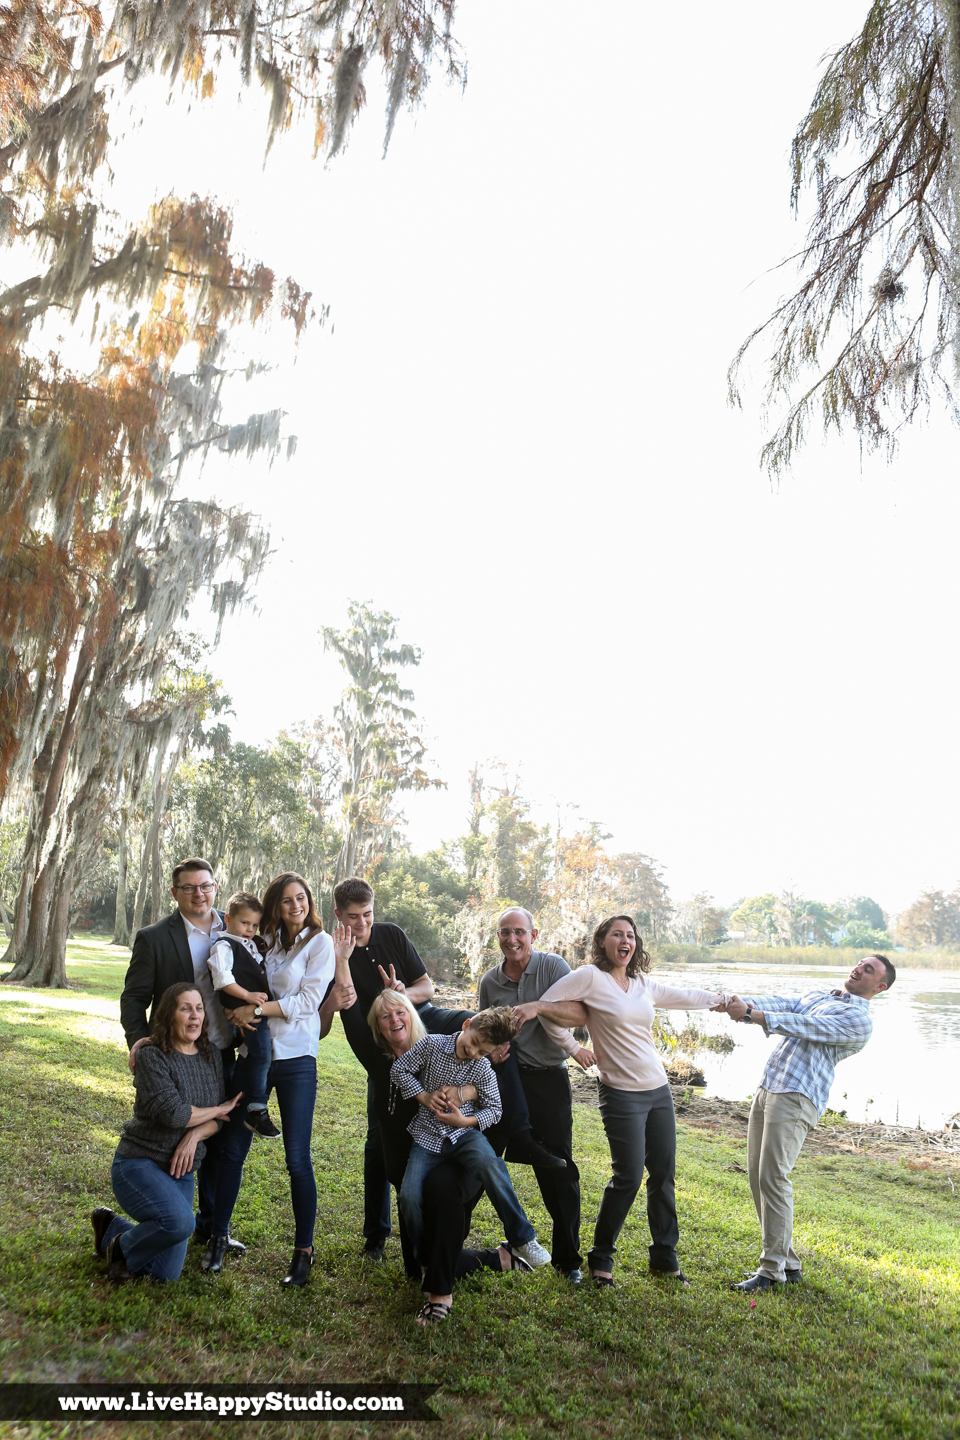 www.livehappystudio.com-family-session-photography-orlando--37.jpg